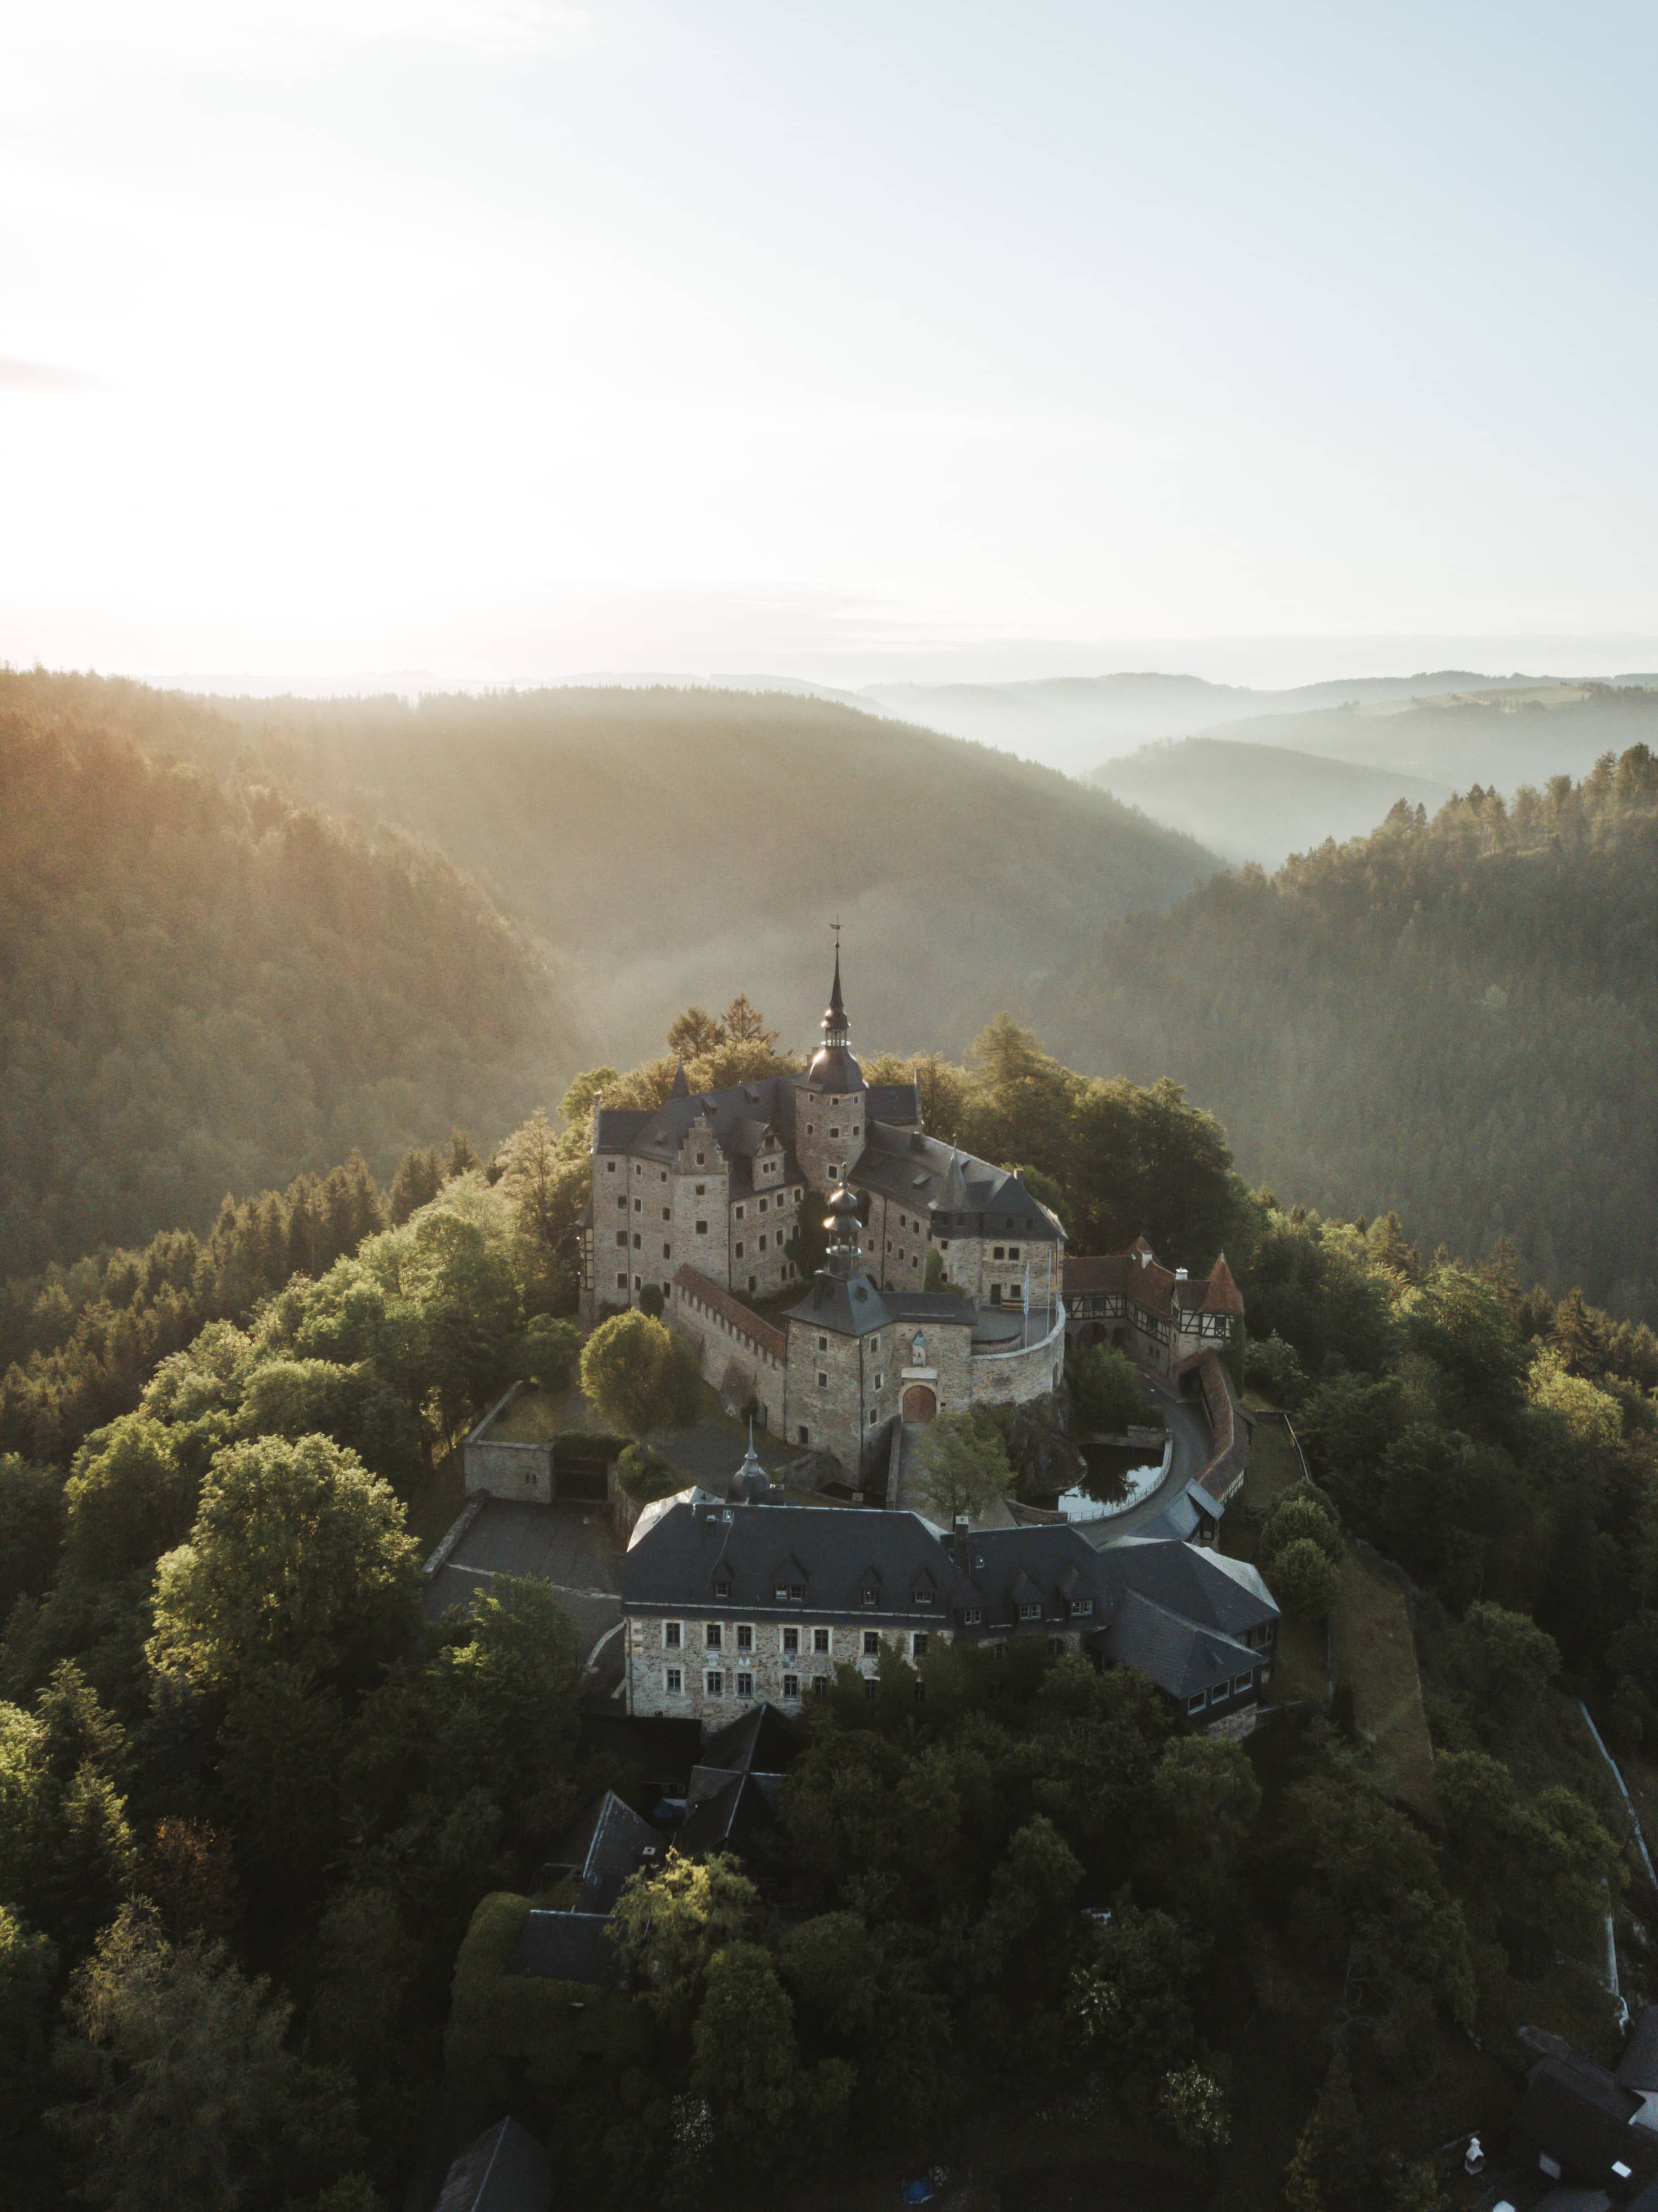 German castle on a hill surrounded by forest while sun rises in the background